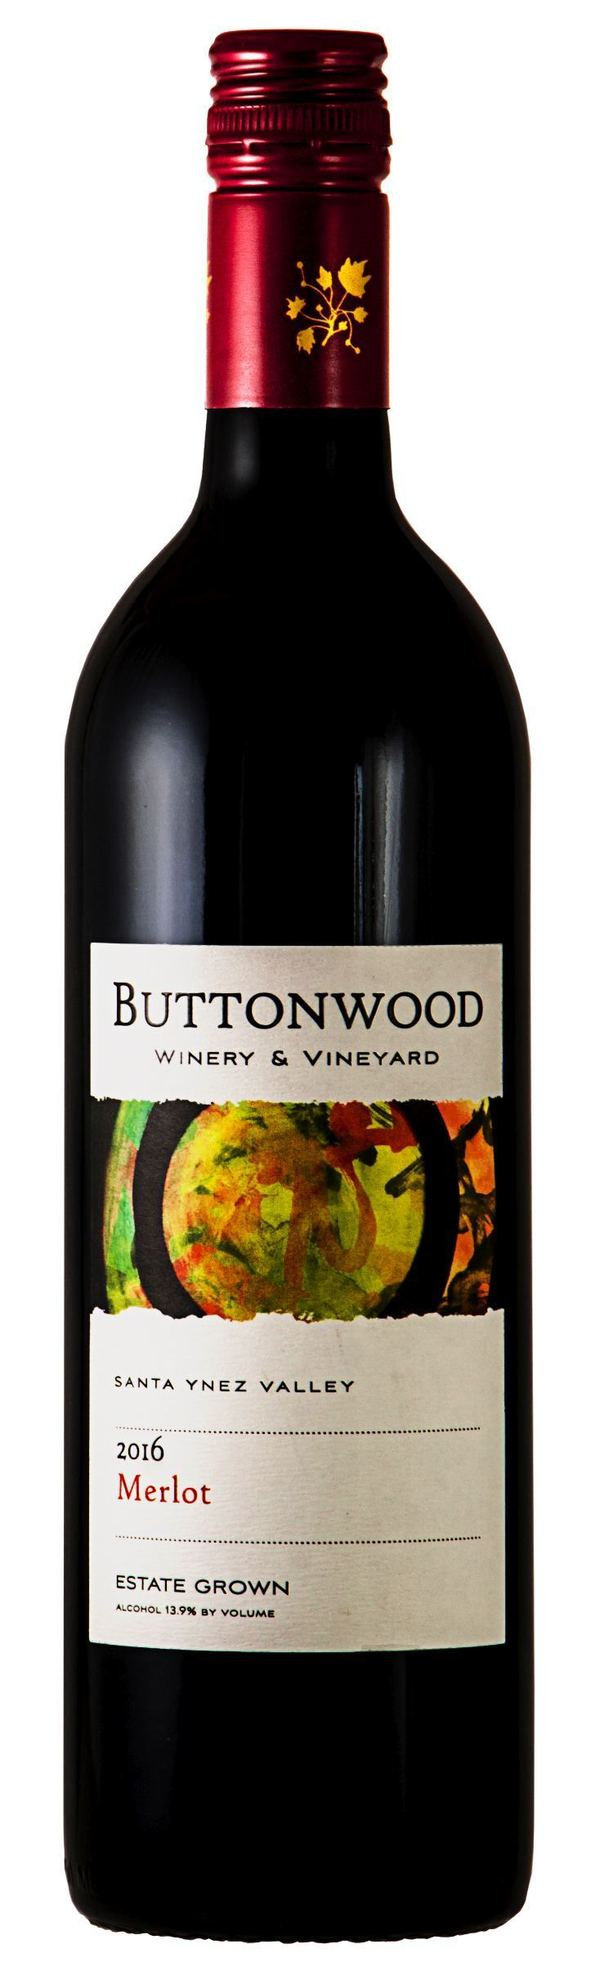 Buttonwood Santa Ynez Valley Merlot 2016 375ml